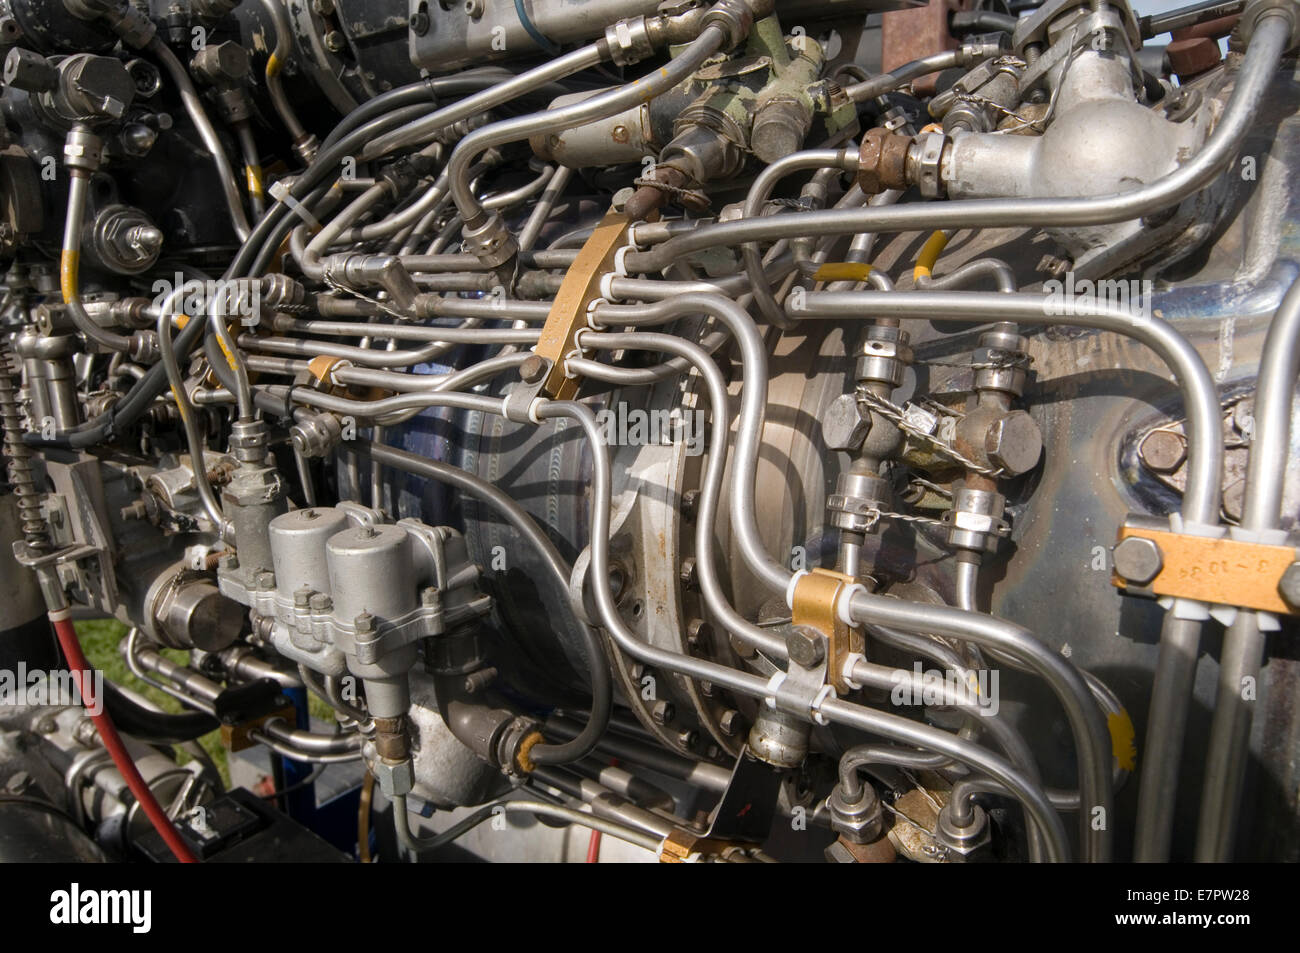 jet engine engines fuel system propulsion propelled - Stock Image